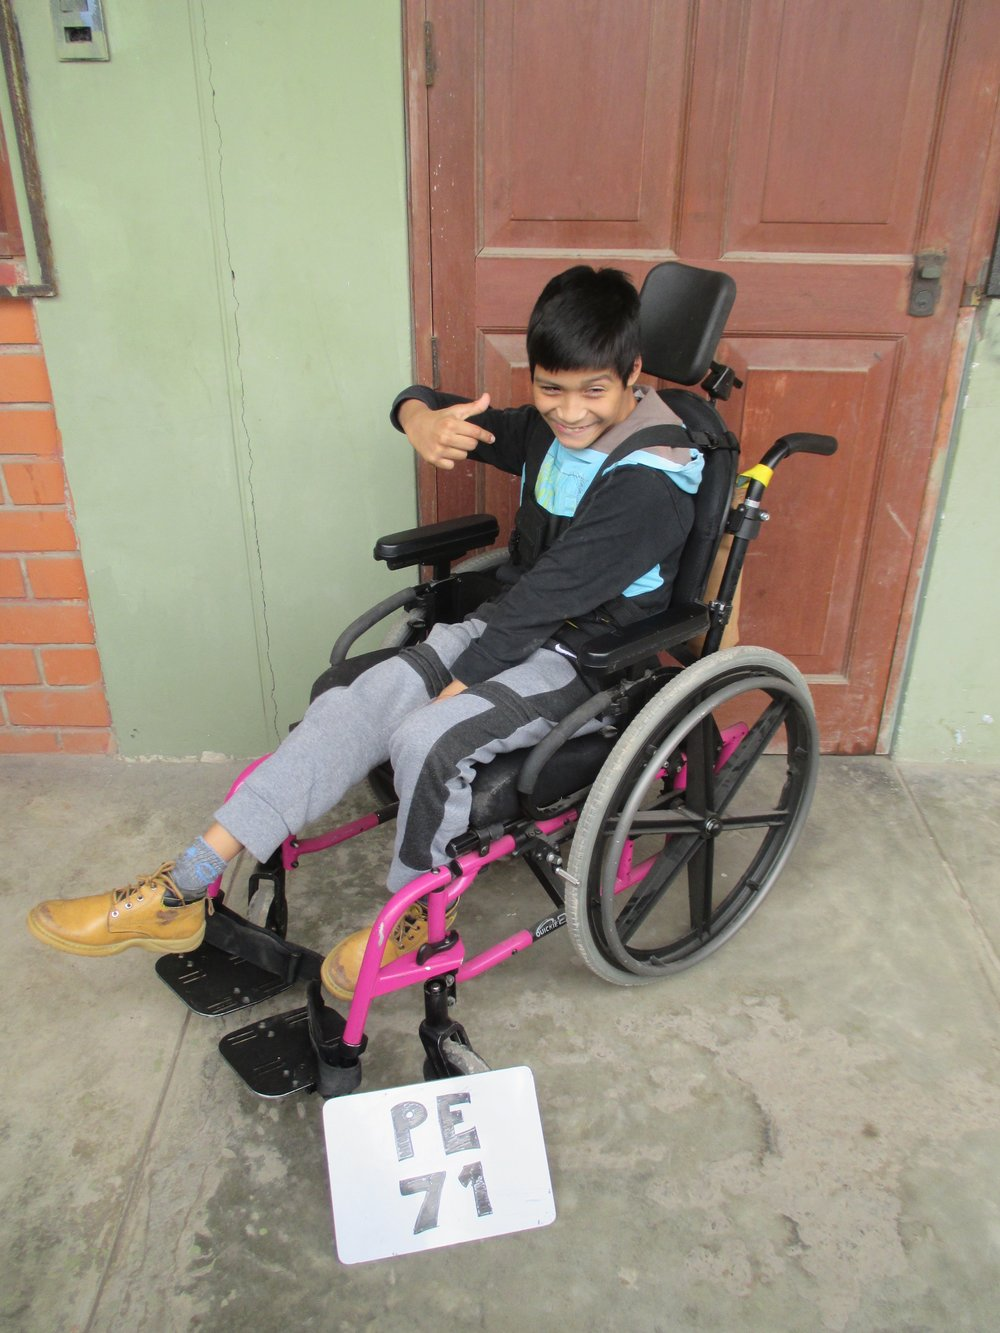 Hector has Cerebral Palsy so his Dad had to carry him everywhere. Then, he received a wheelchair from the Peruvian Physical Therapy Program and can now get around on his own.